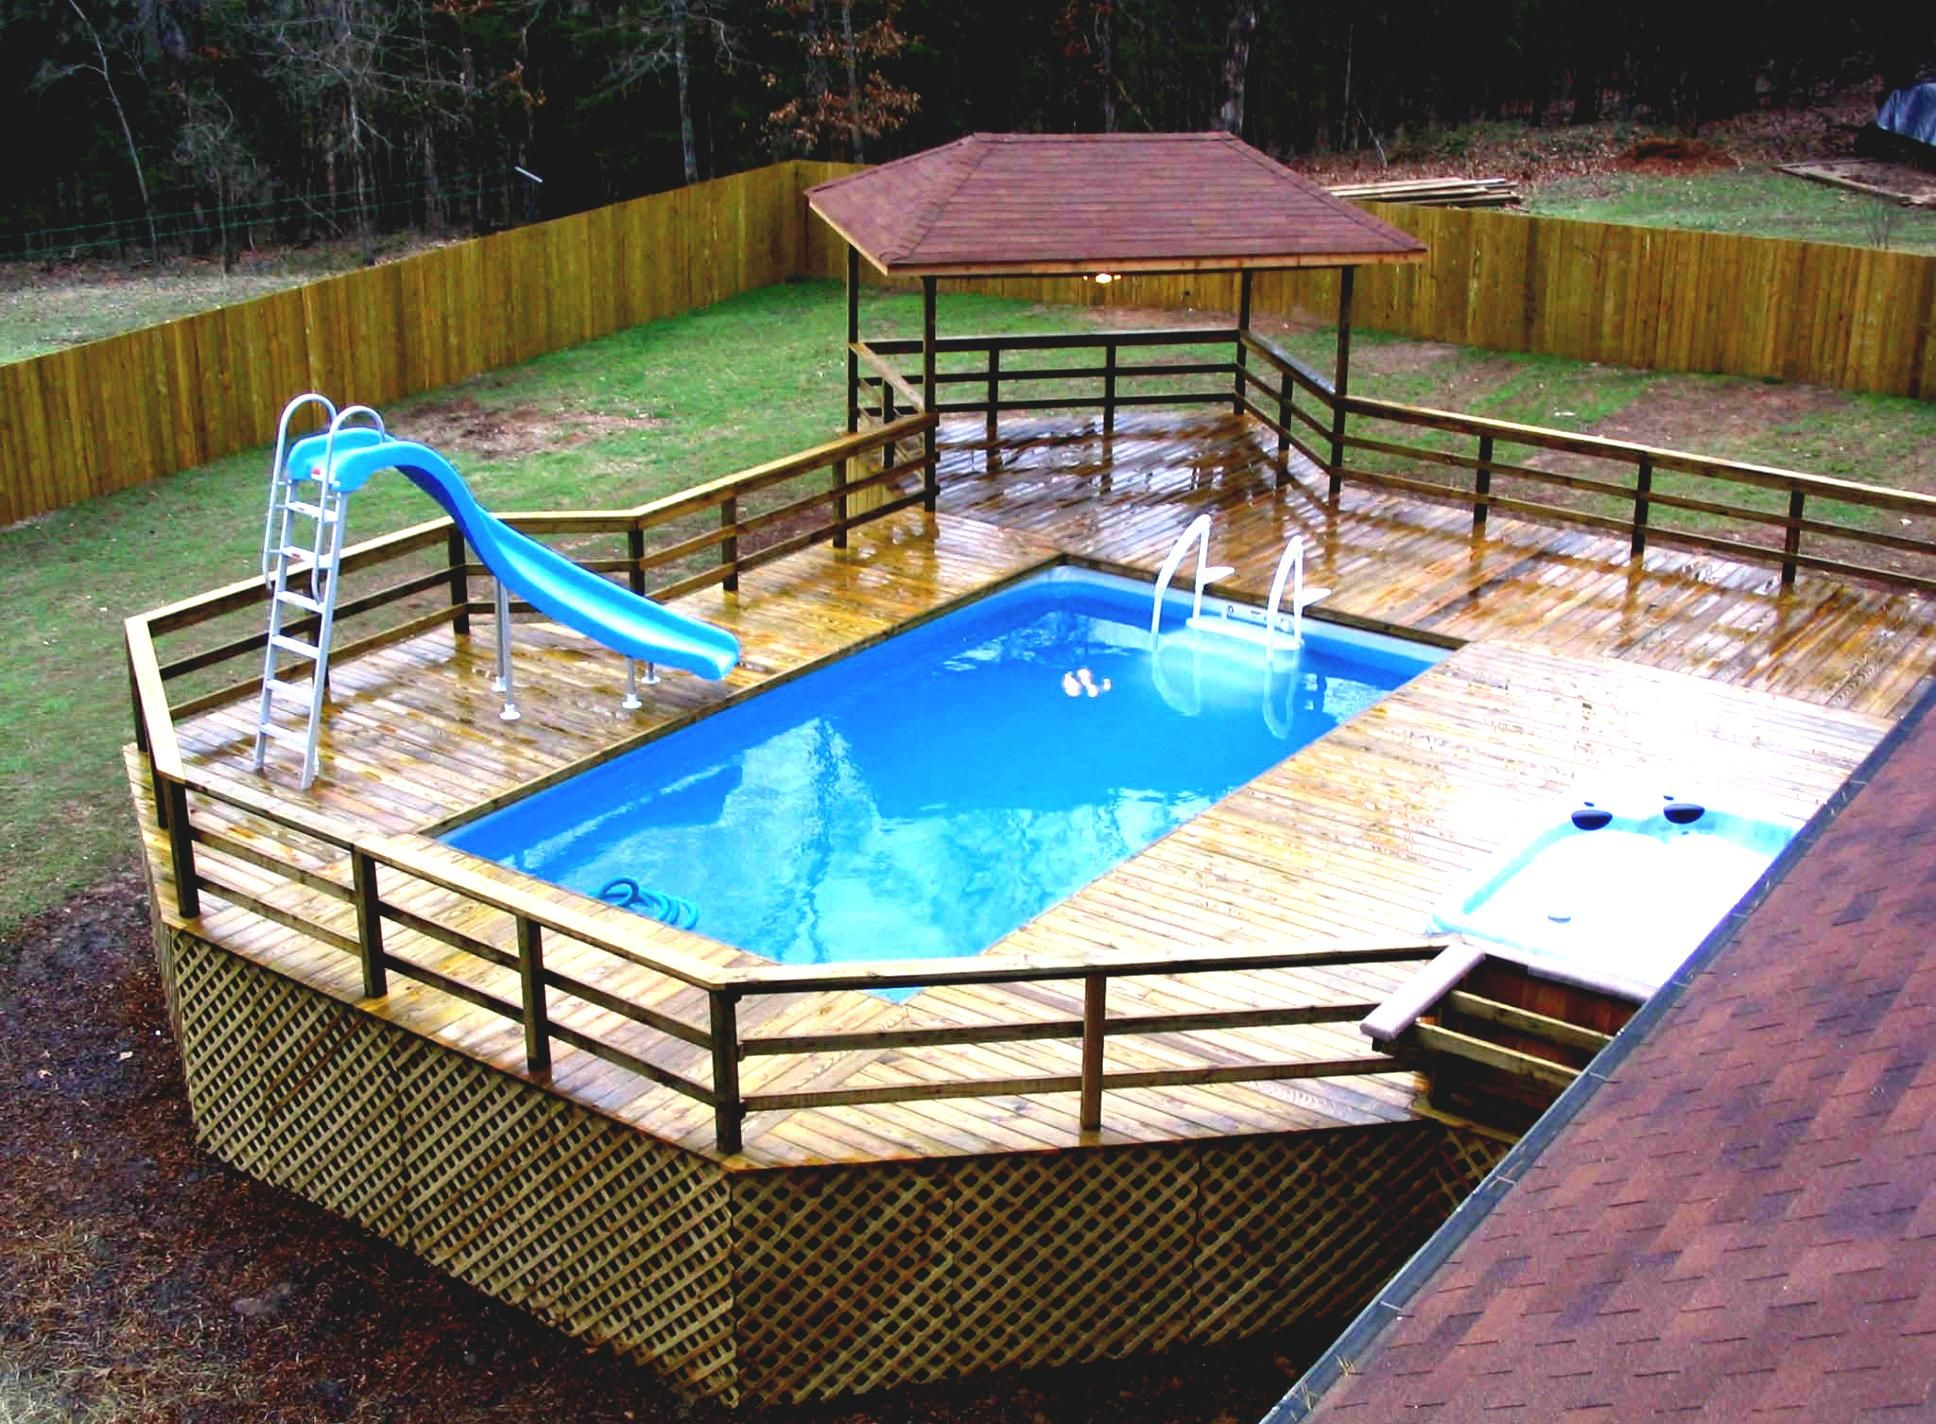 Intex above ground pool landscaping ideas pdf backyard for Above ground pool ideas on a budget